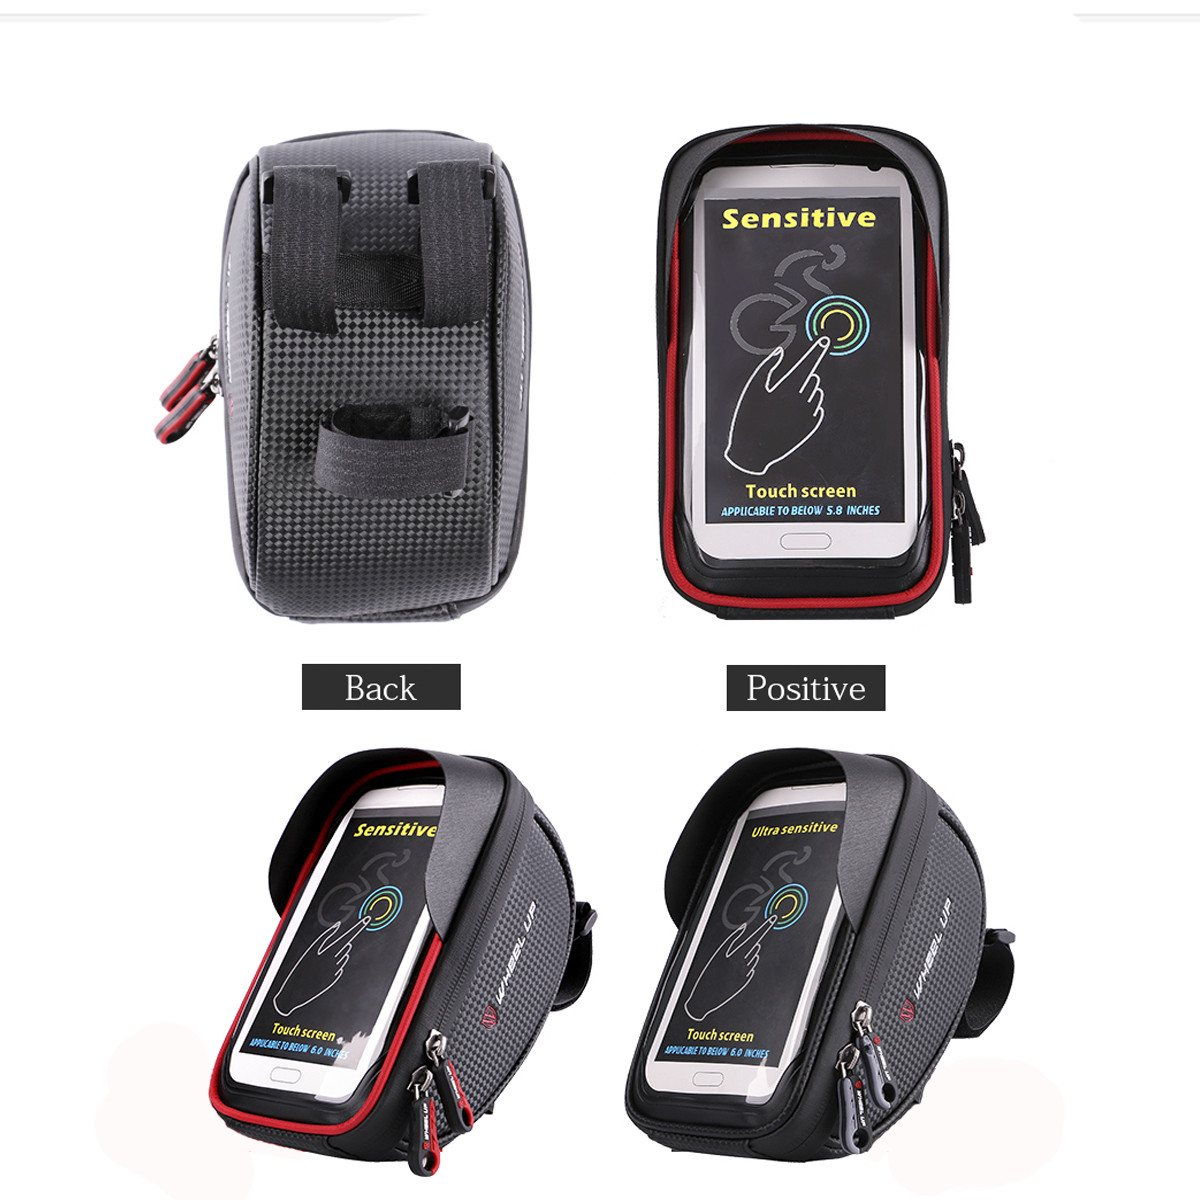 Wheelup Motorcycle Bicycle Bike Waterproof 6 inch Handlebar Front Bag for Cell Phone Outdoor Sports Cycling Bag Panniers